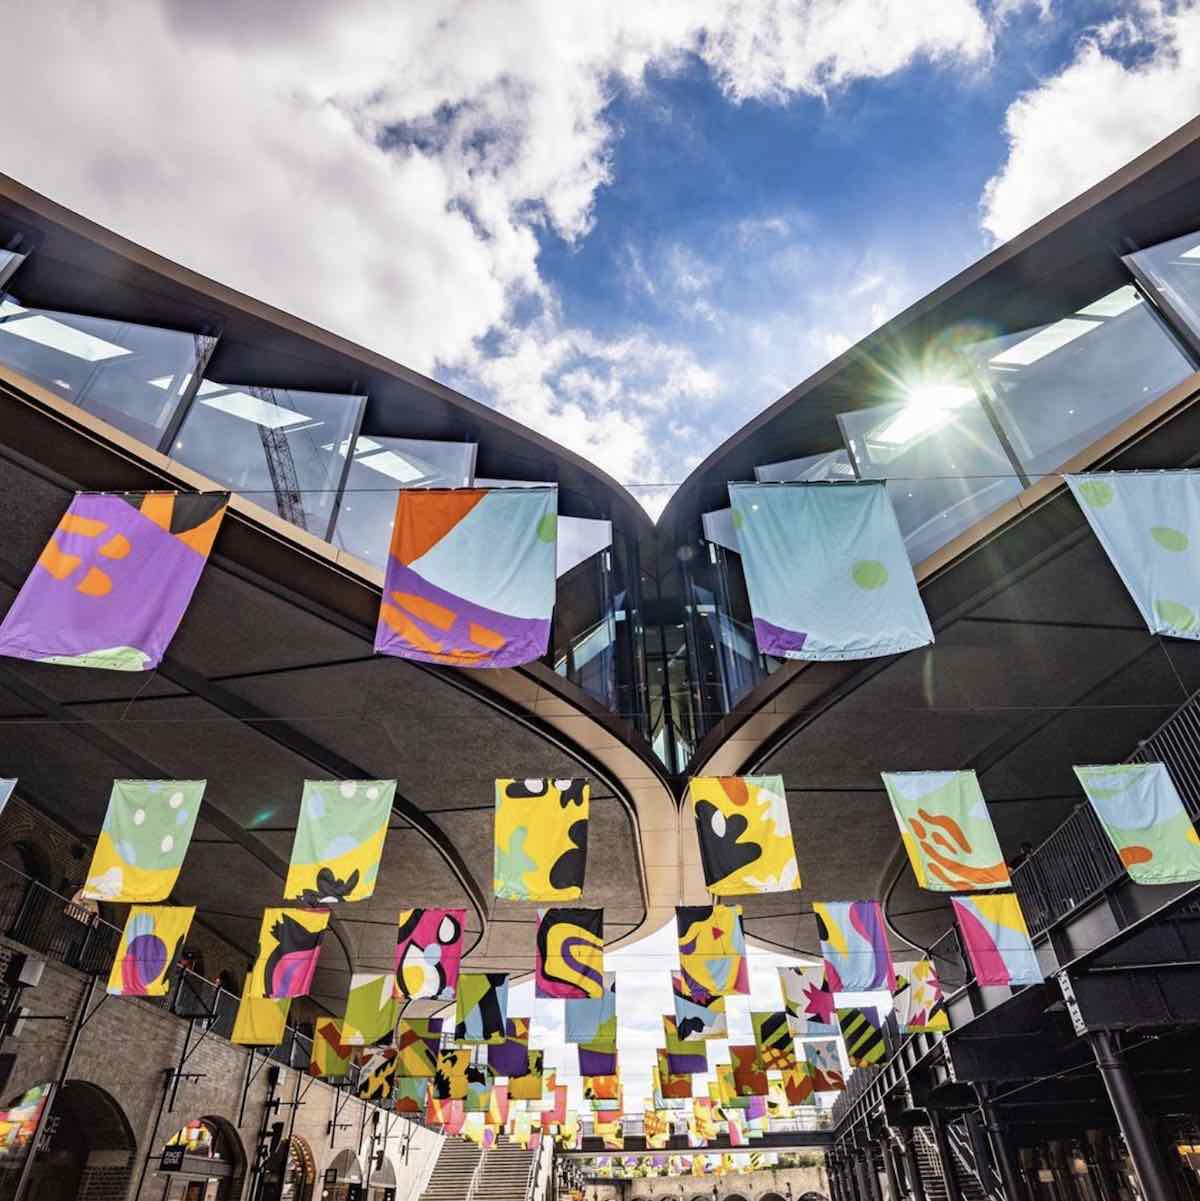 PATTERN PORTRAITS by Lauren Godfrey @ Coal Drops Yard - Photo via IG by @l_d_f_official